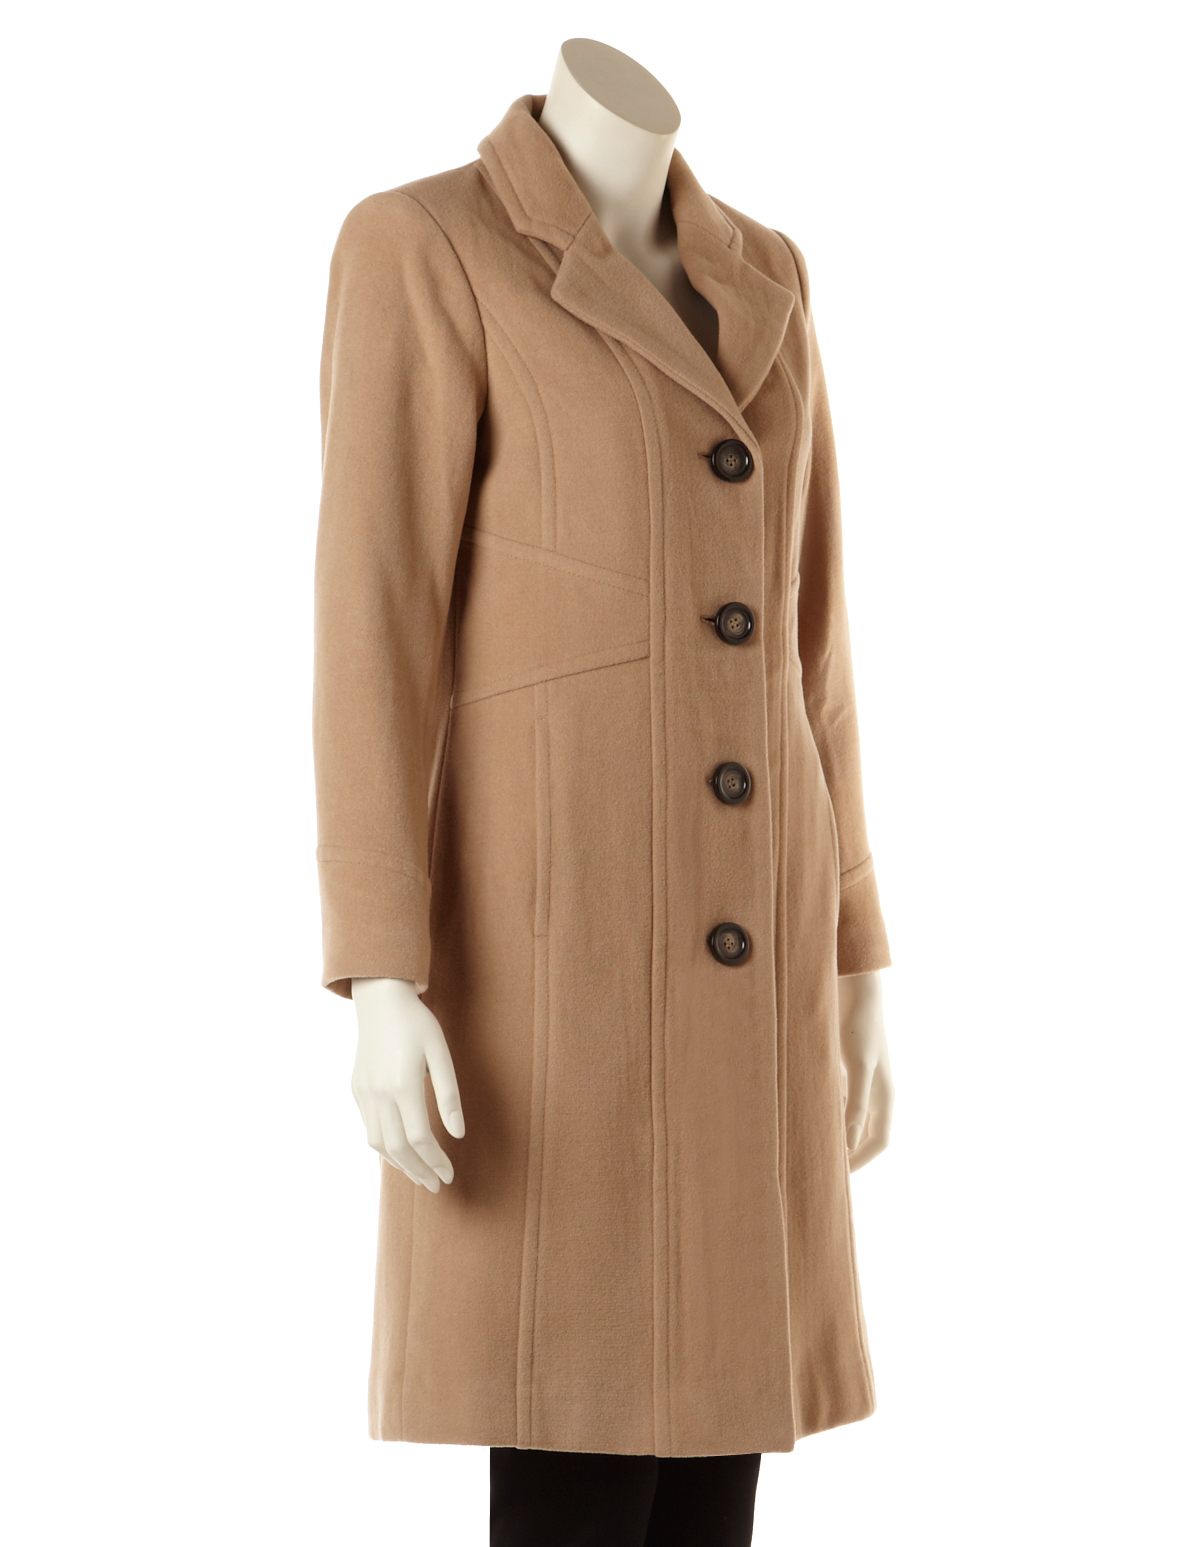 Long Camel Wool Topper Coat (Petite Only)